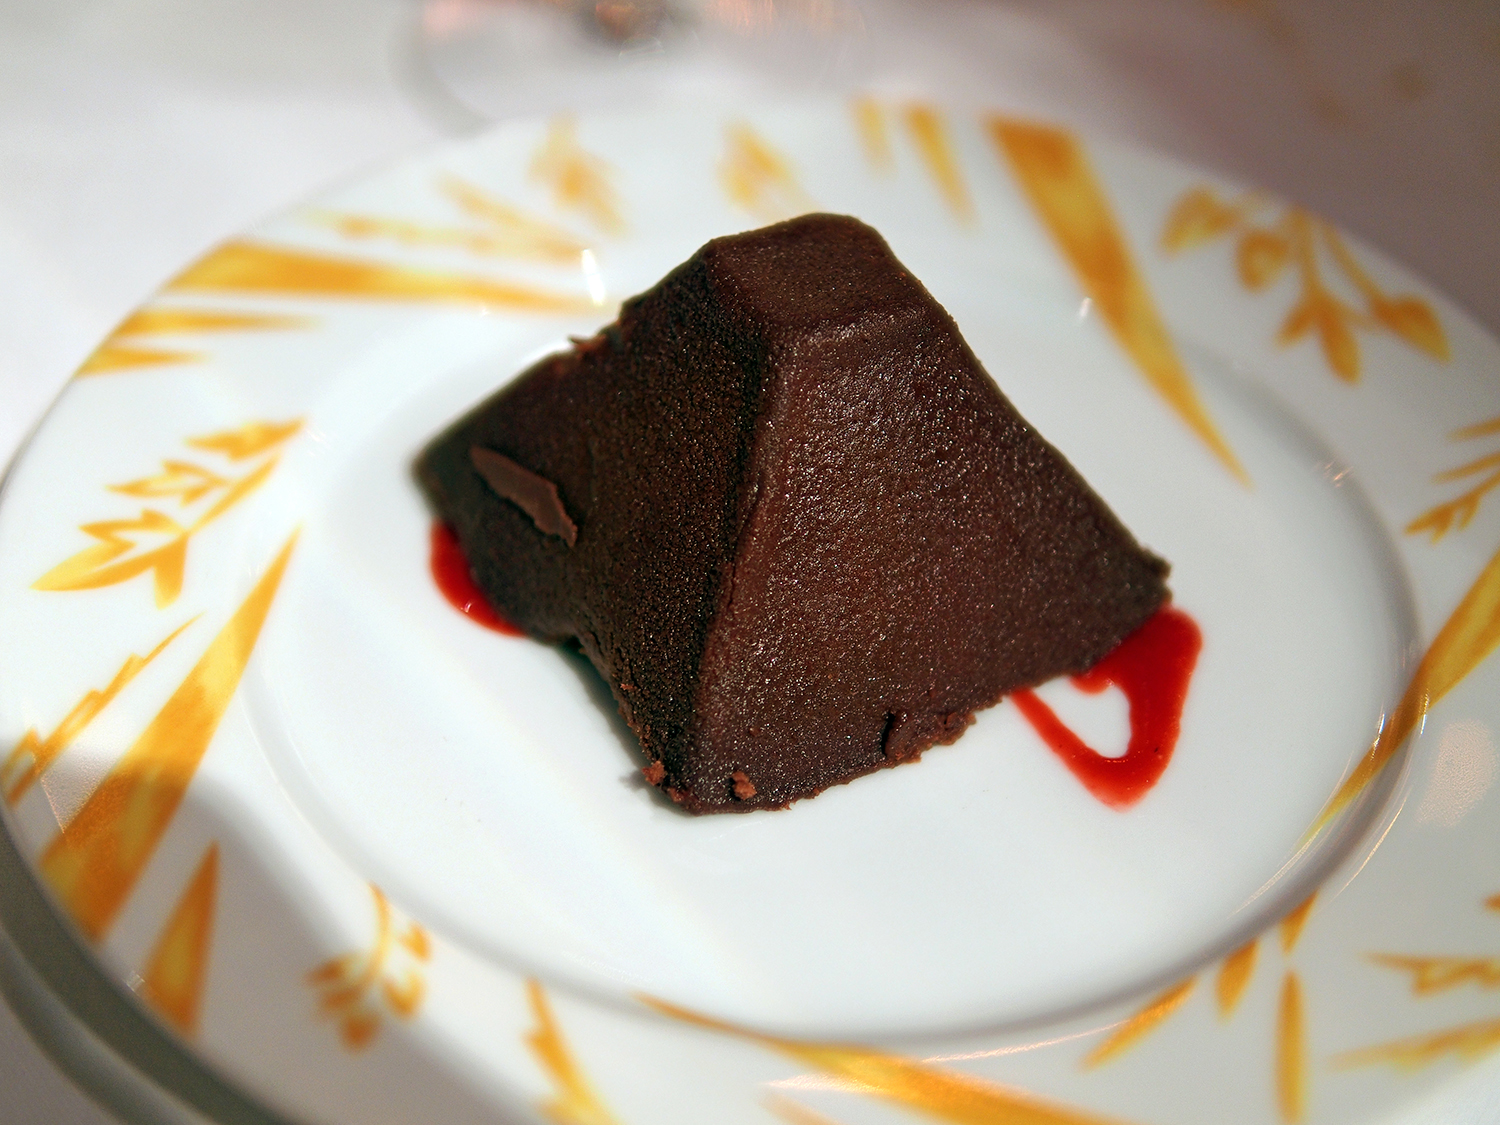 Chocolate Pyramid (bittersweet chocolate mousse with a raspberry filling)